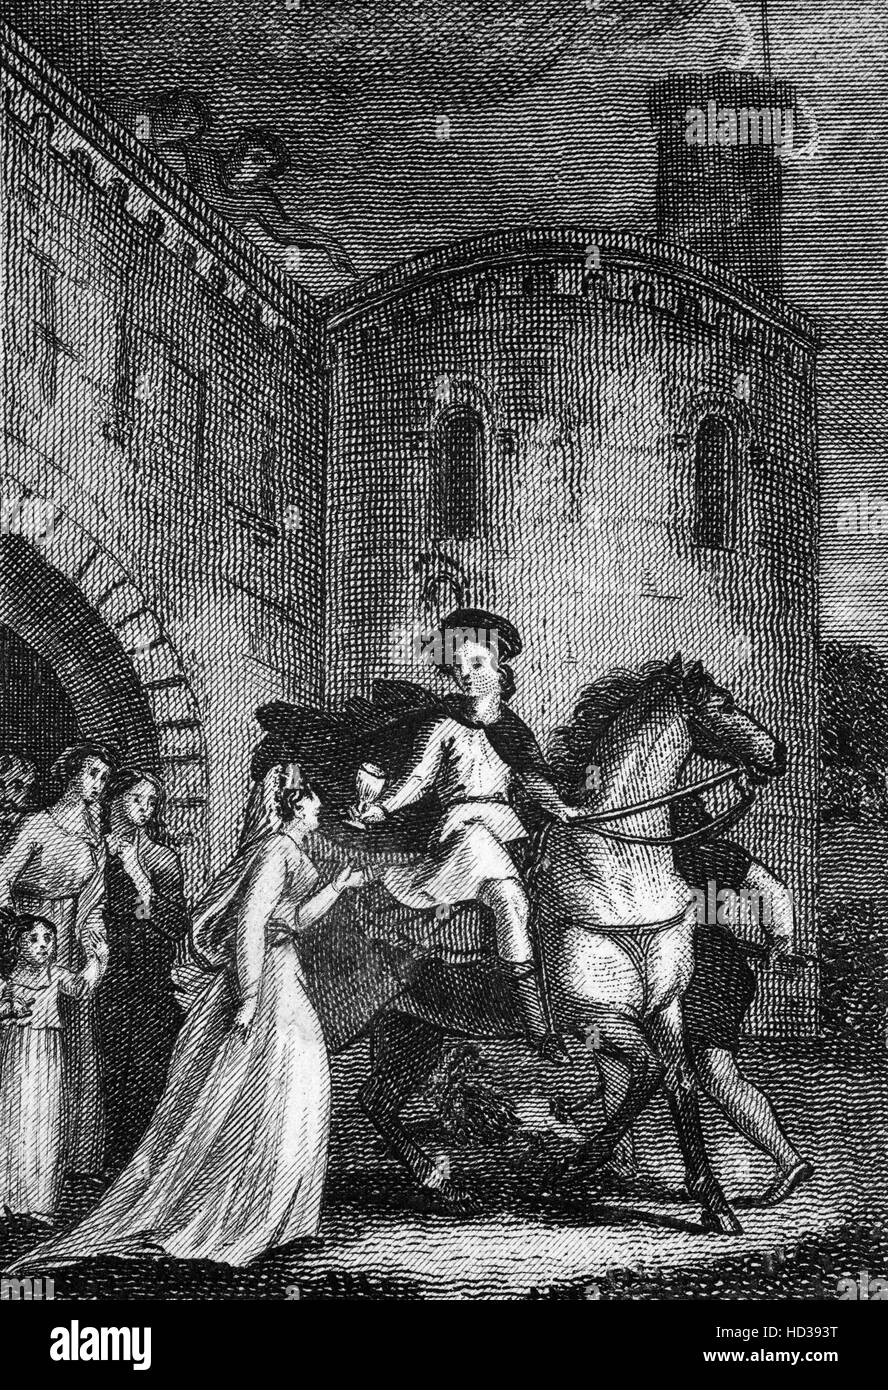 The treachery of Elfrida in causing the death of Edward the Martyr,  King of England from 975 until he was murdered - Stock Image